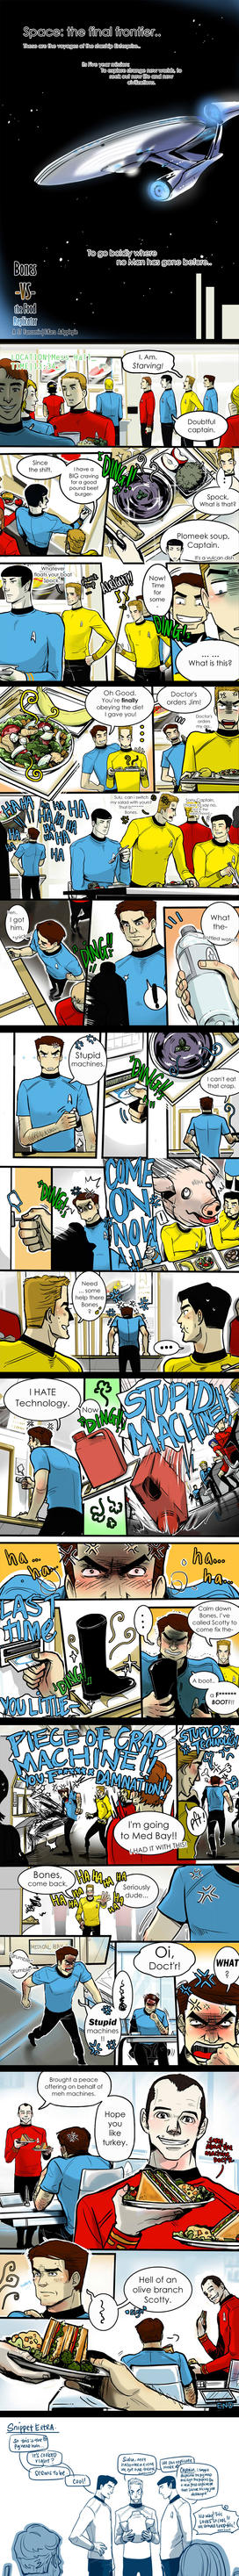 ST_comic: Bones vs the Food Replicator by applepie1989